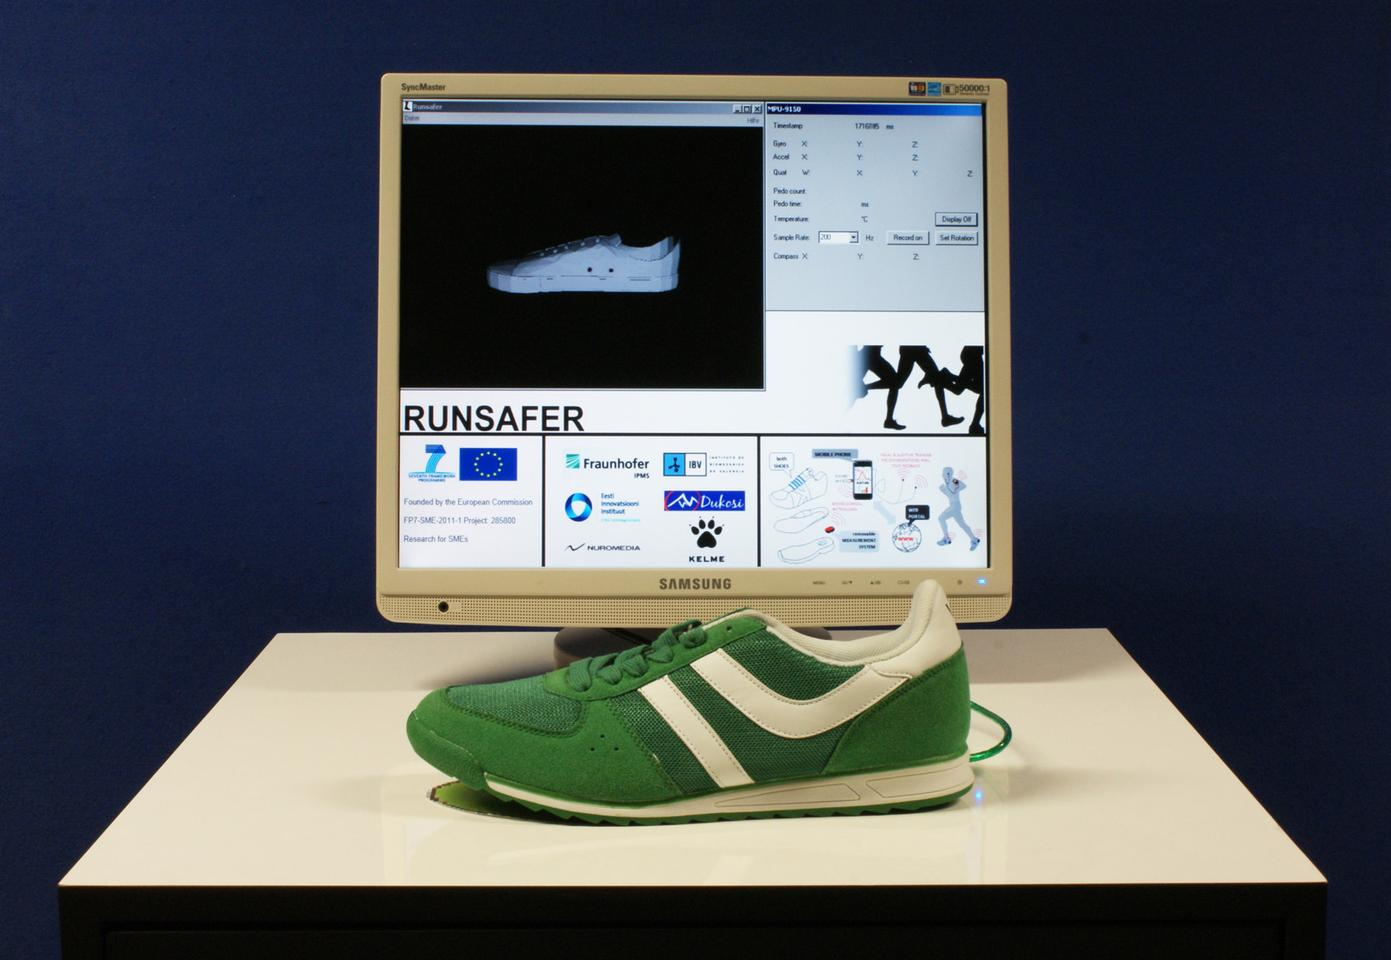 A high-tech running shoe being developed by Fraunhofer has the ability to evaluate a jogger's running form and technique in real-time